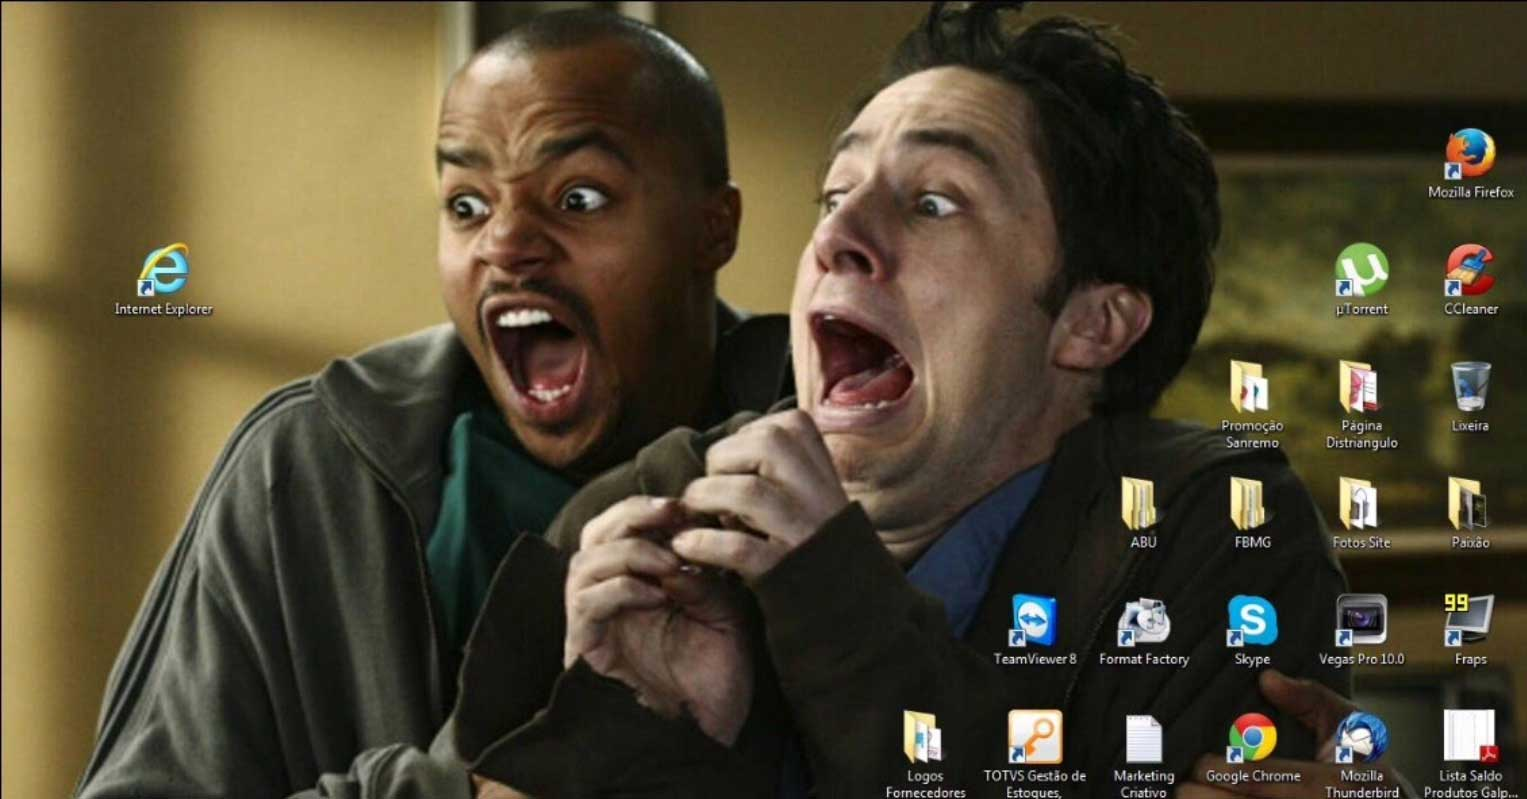 21 Desktop Backgrounds That Are Crushing It | SMOSH